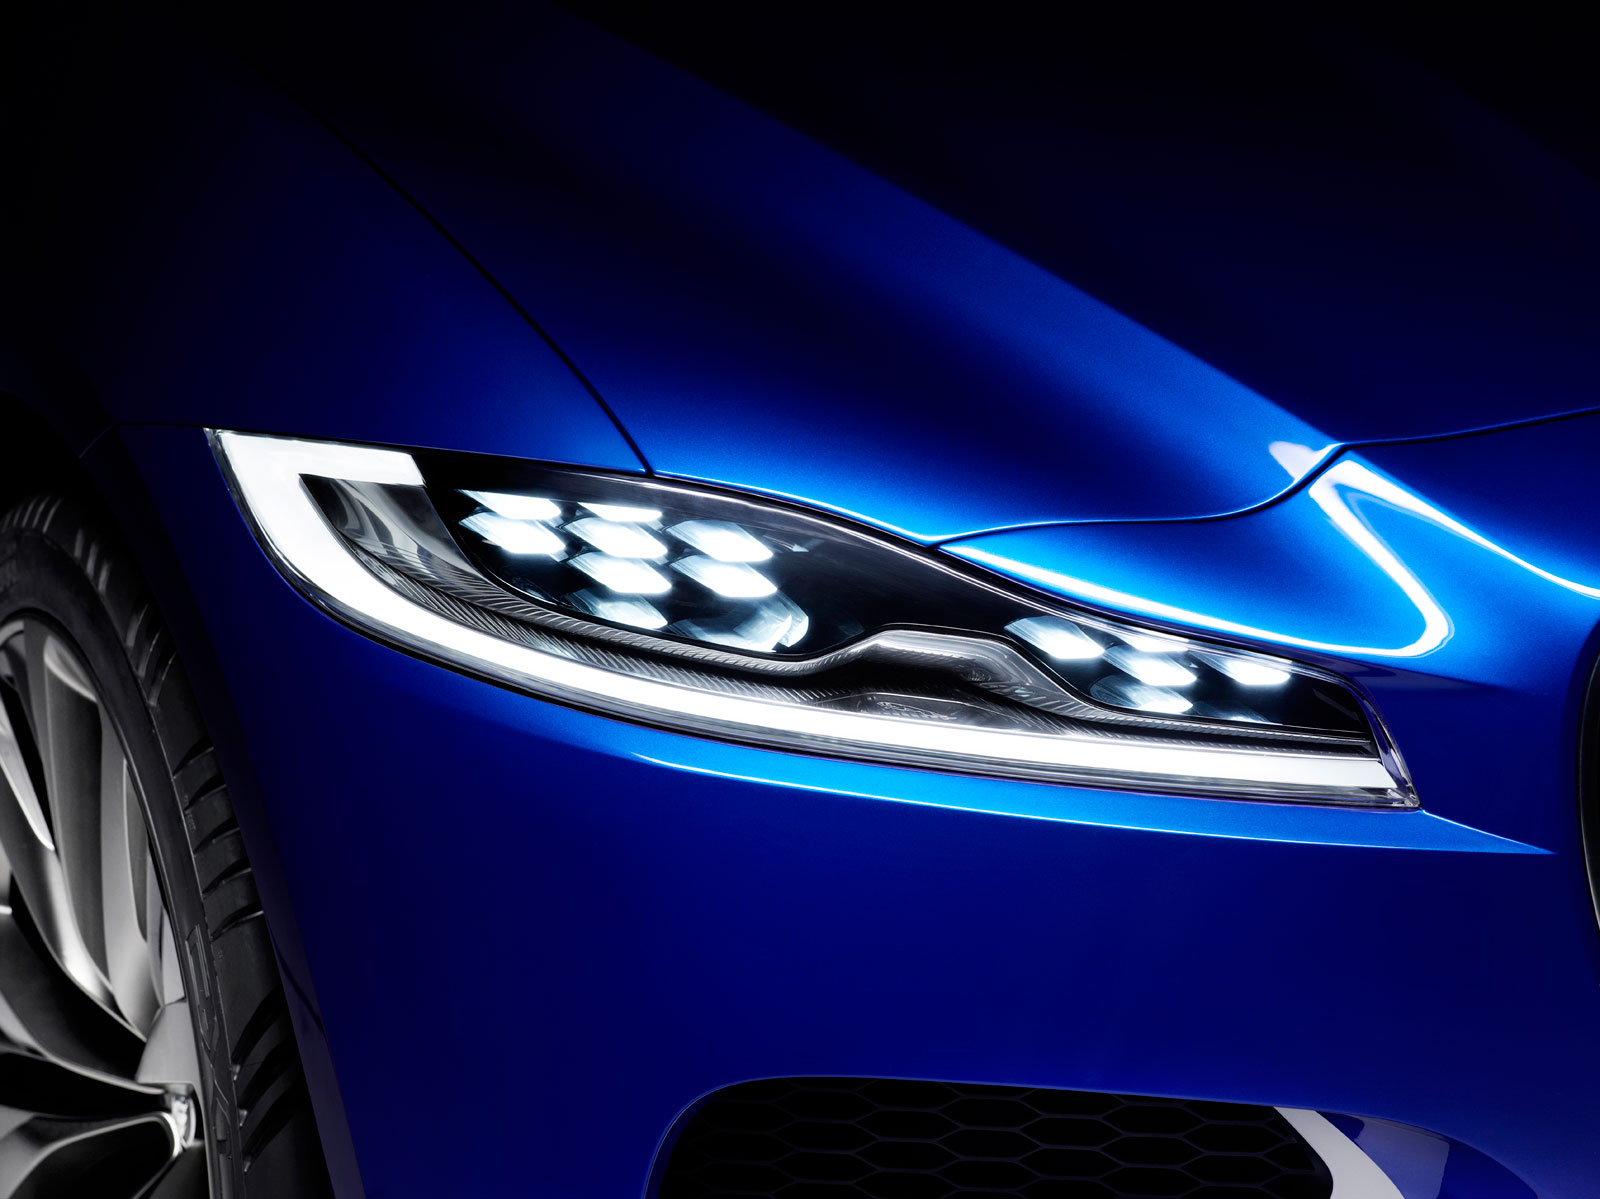 Jaguar C-X17 Concept - Headlight